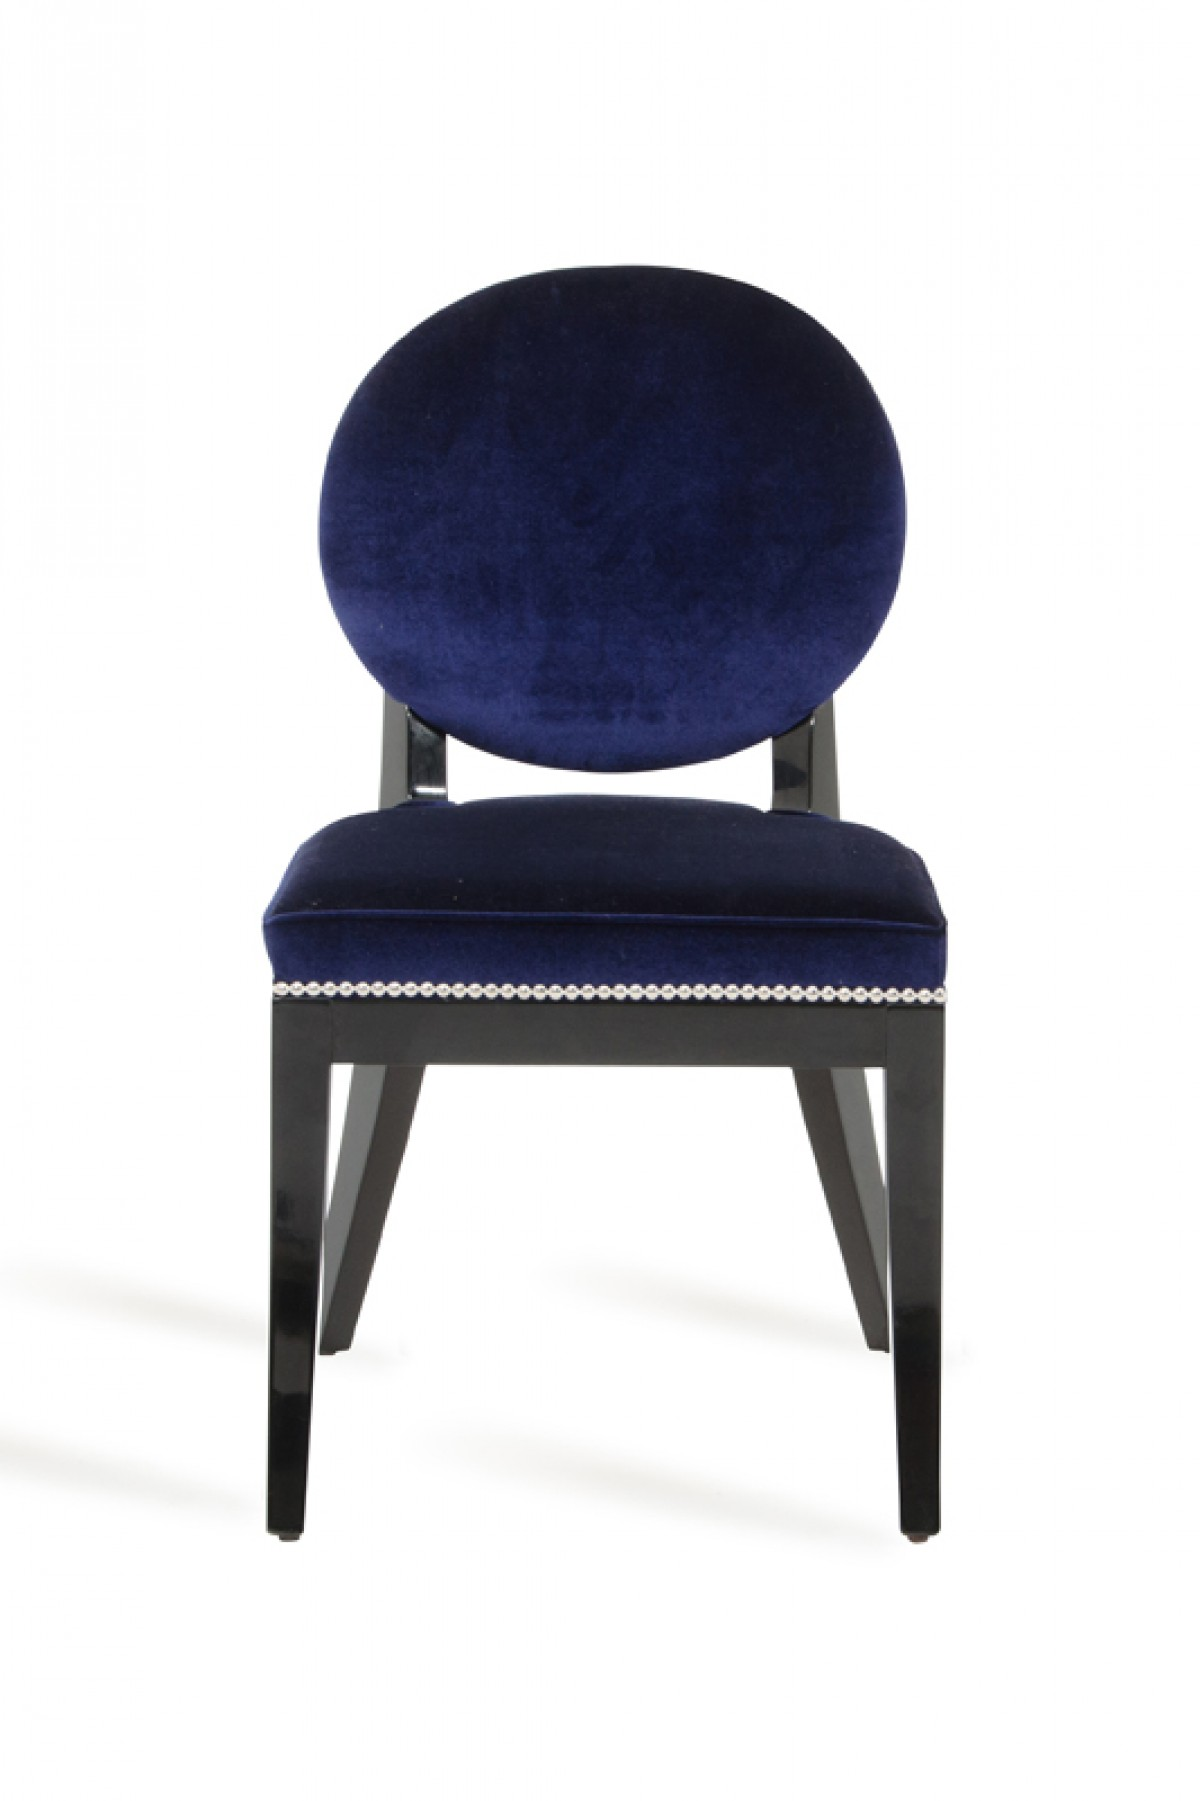 Isabella Modern Blue Dining Chair Set of 2 : ak011 272861isabellablue12 16 2016hr02 from www.vigfurniture.com size 1200 x 1801 jpeg 116kB